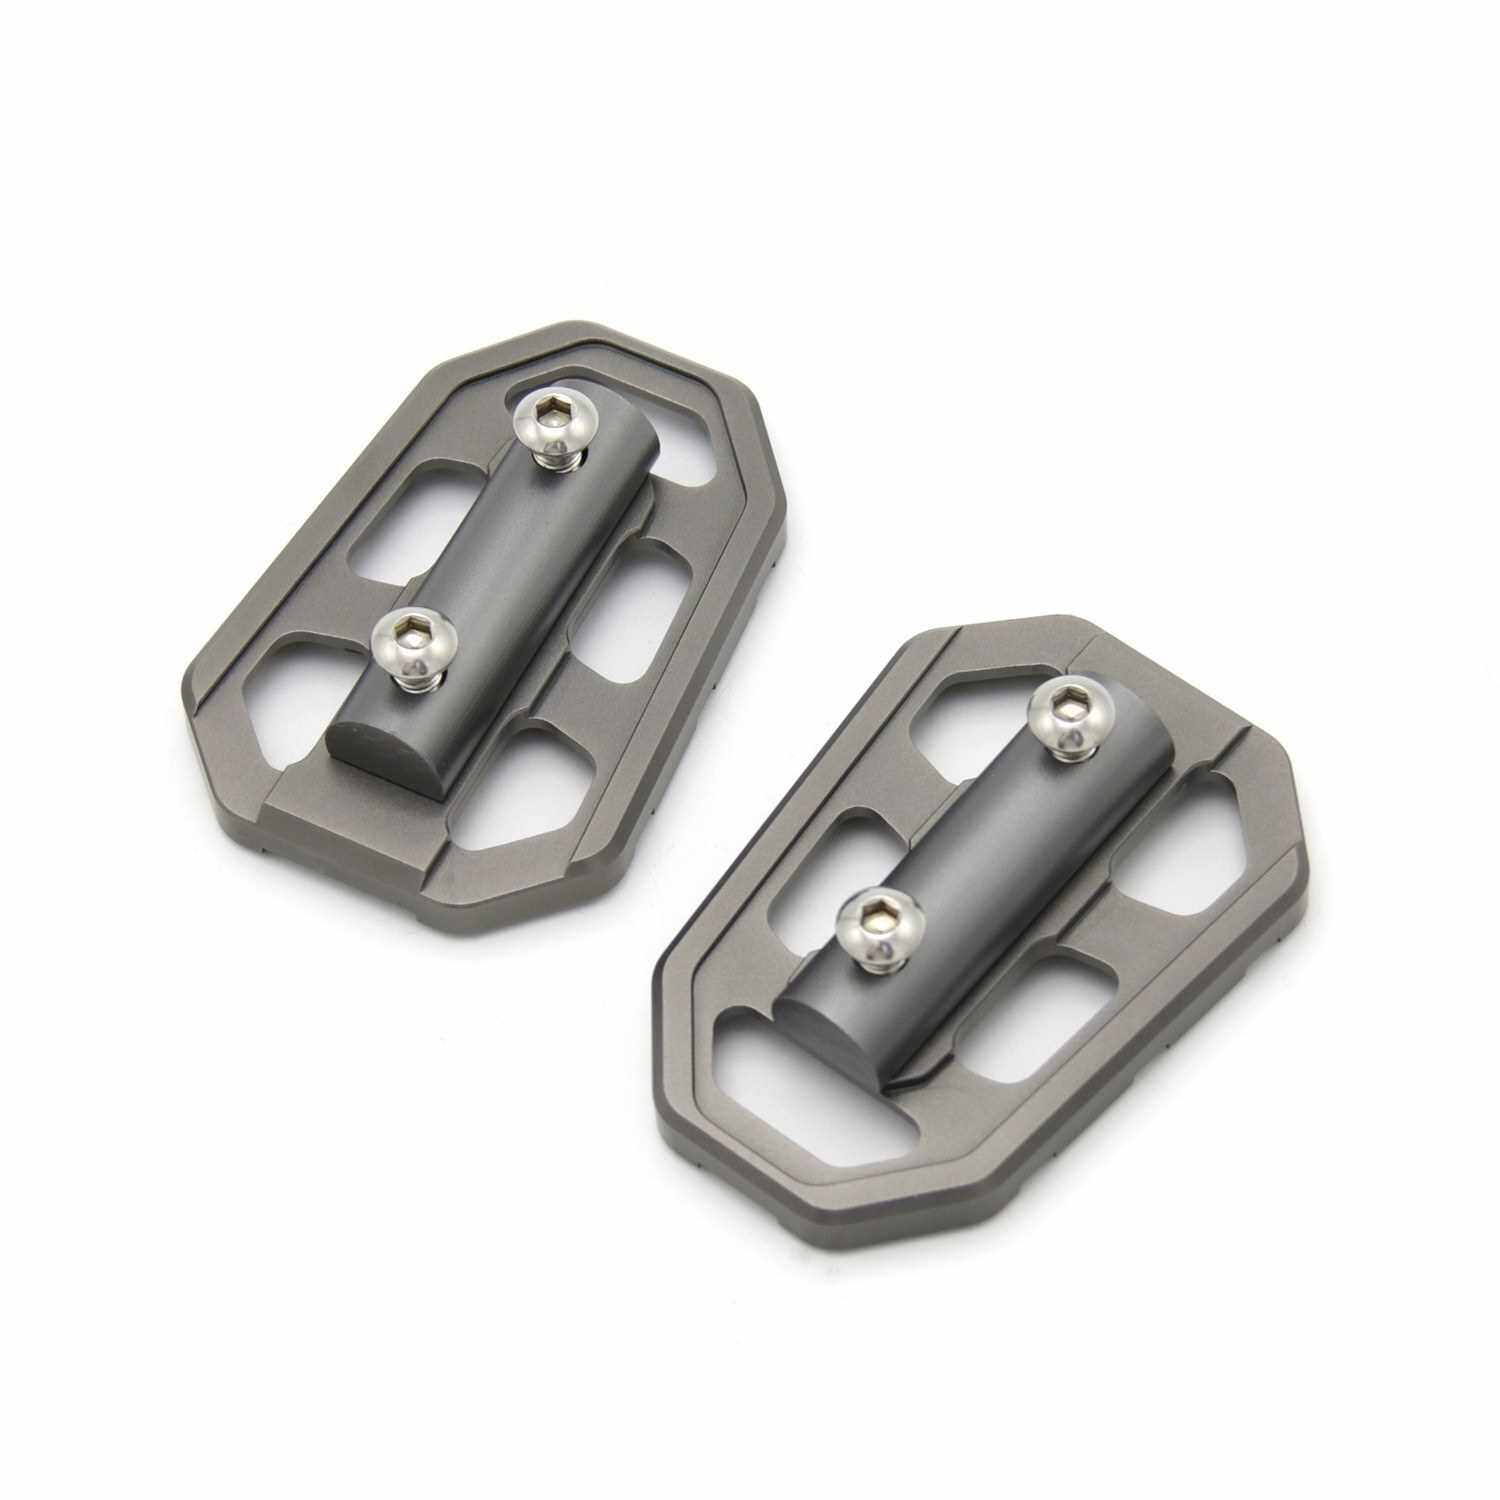 Motorcycle Foot Pegs Front Billet Wide Pedals Rest Footpegs Replacement for BMW BMW F750GS F850GS G310GS R1200GS S1000XR R Nine T (Silver)